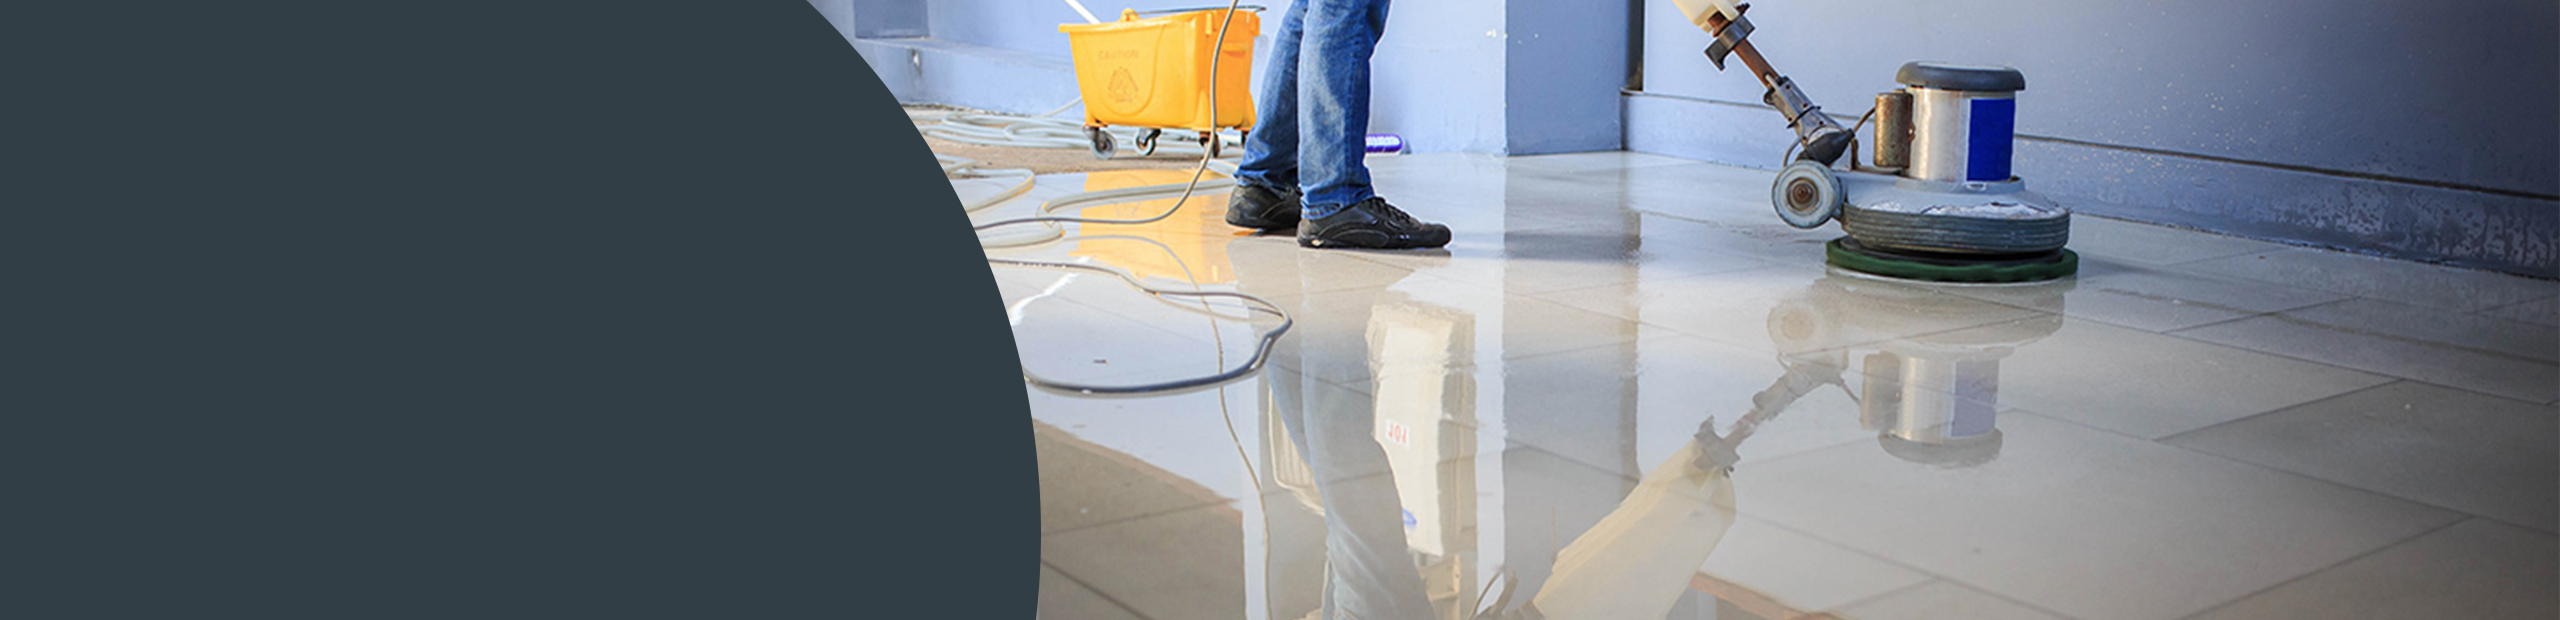 Commercial Cleaning Barking